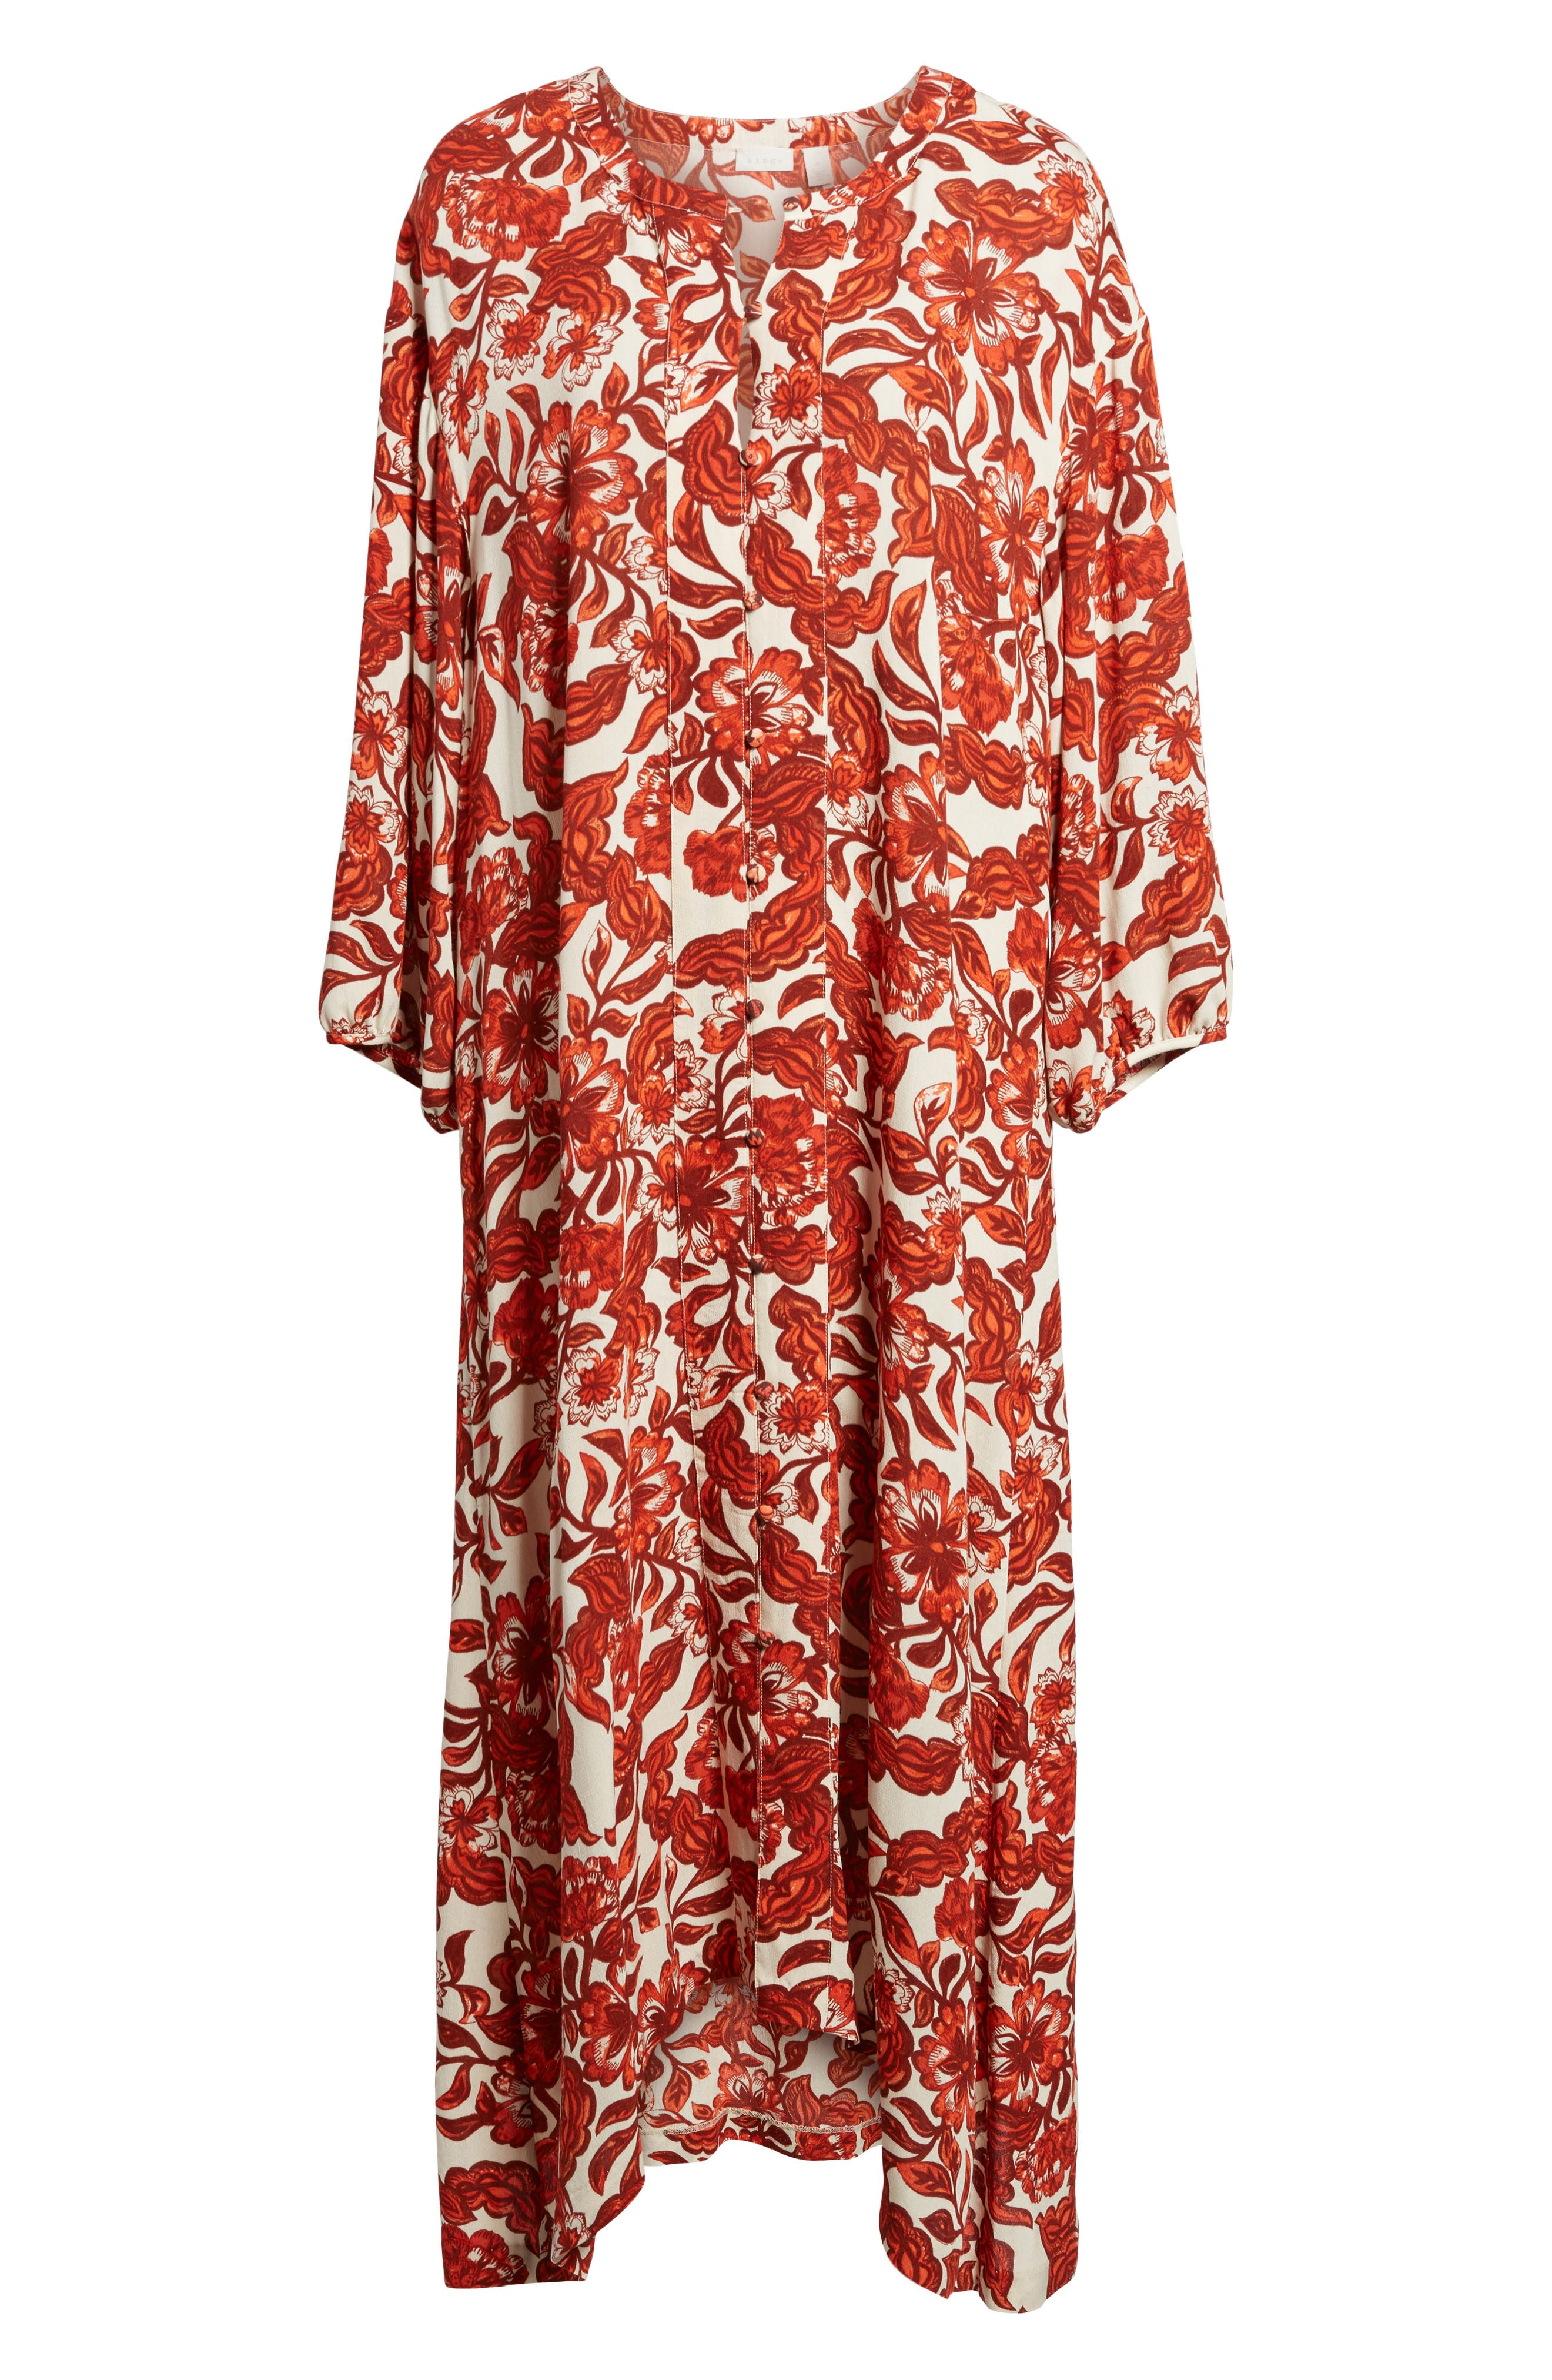 Floral Print Maxi Dress,                             Alternate thumbnail 6, color,                             Red Lava Snap Floral